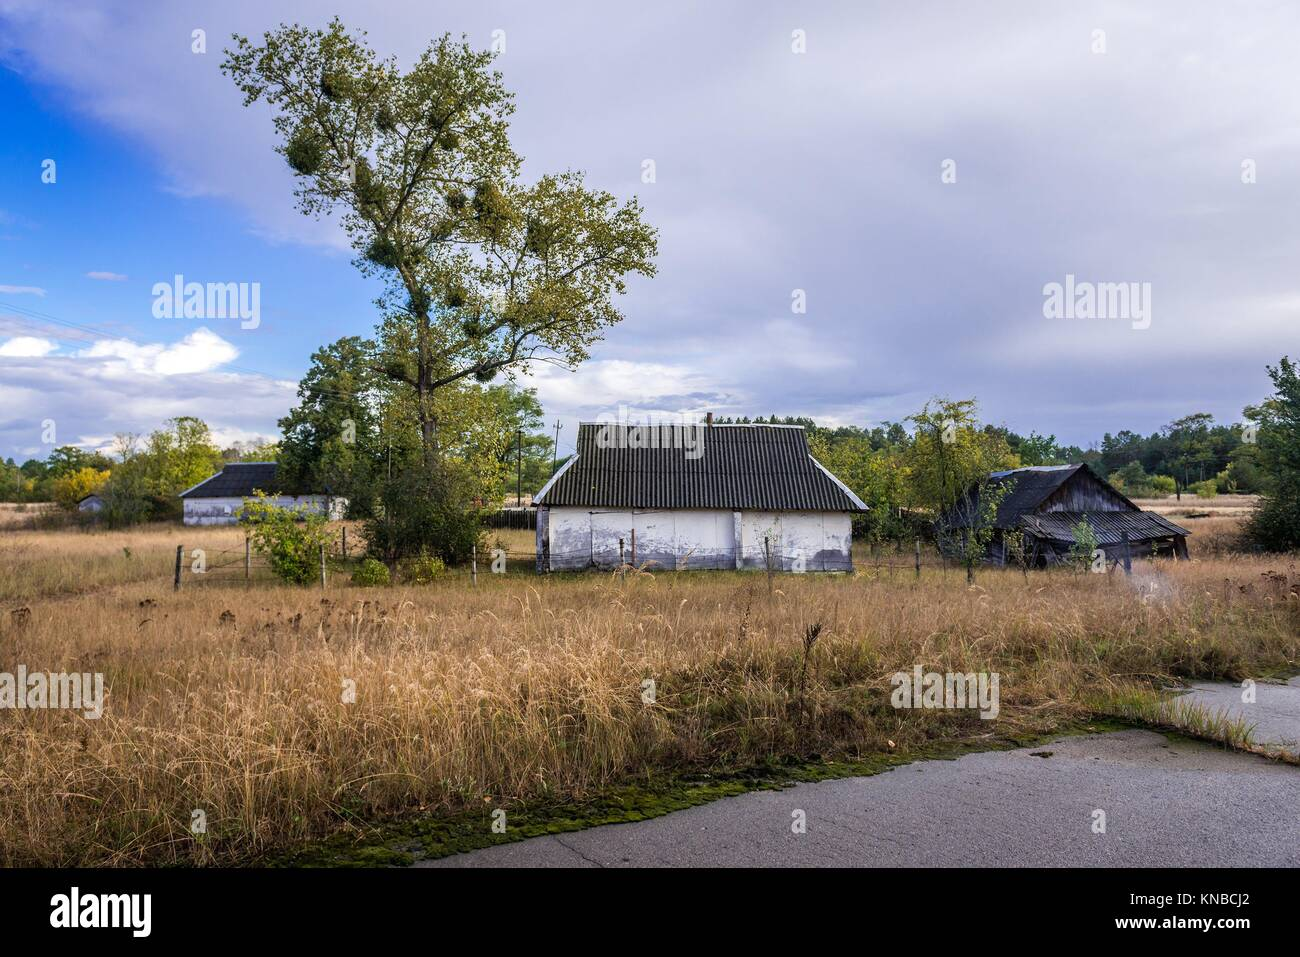 Kupuvate village of Chernobyl Nuclear Power Plant Zone of Alienation around nuclear reactor disaster in Ukraine. - Stock Image